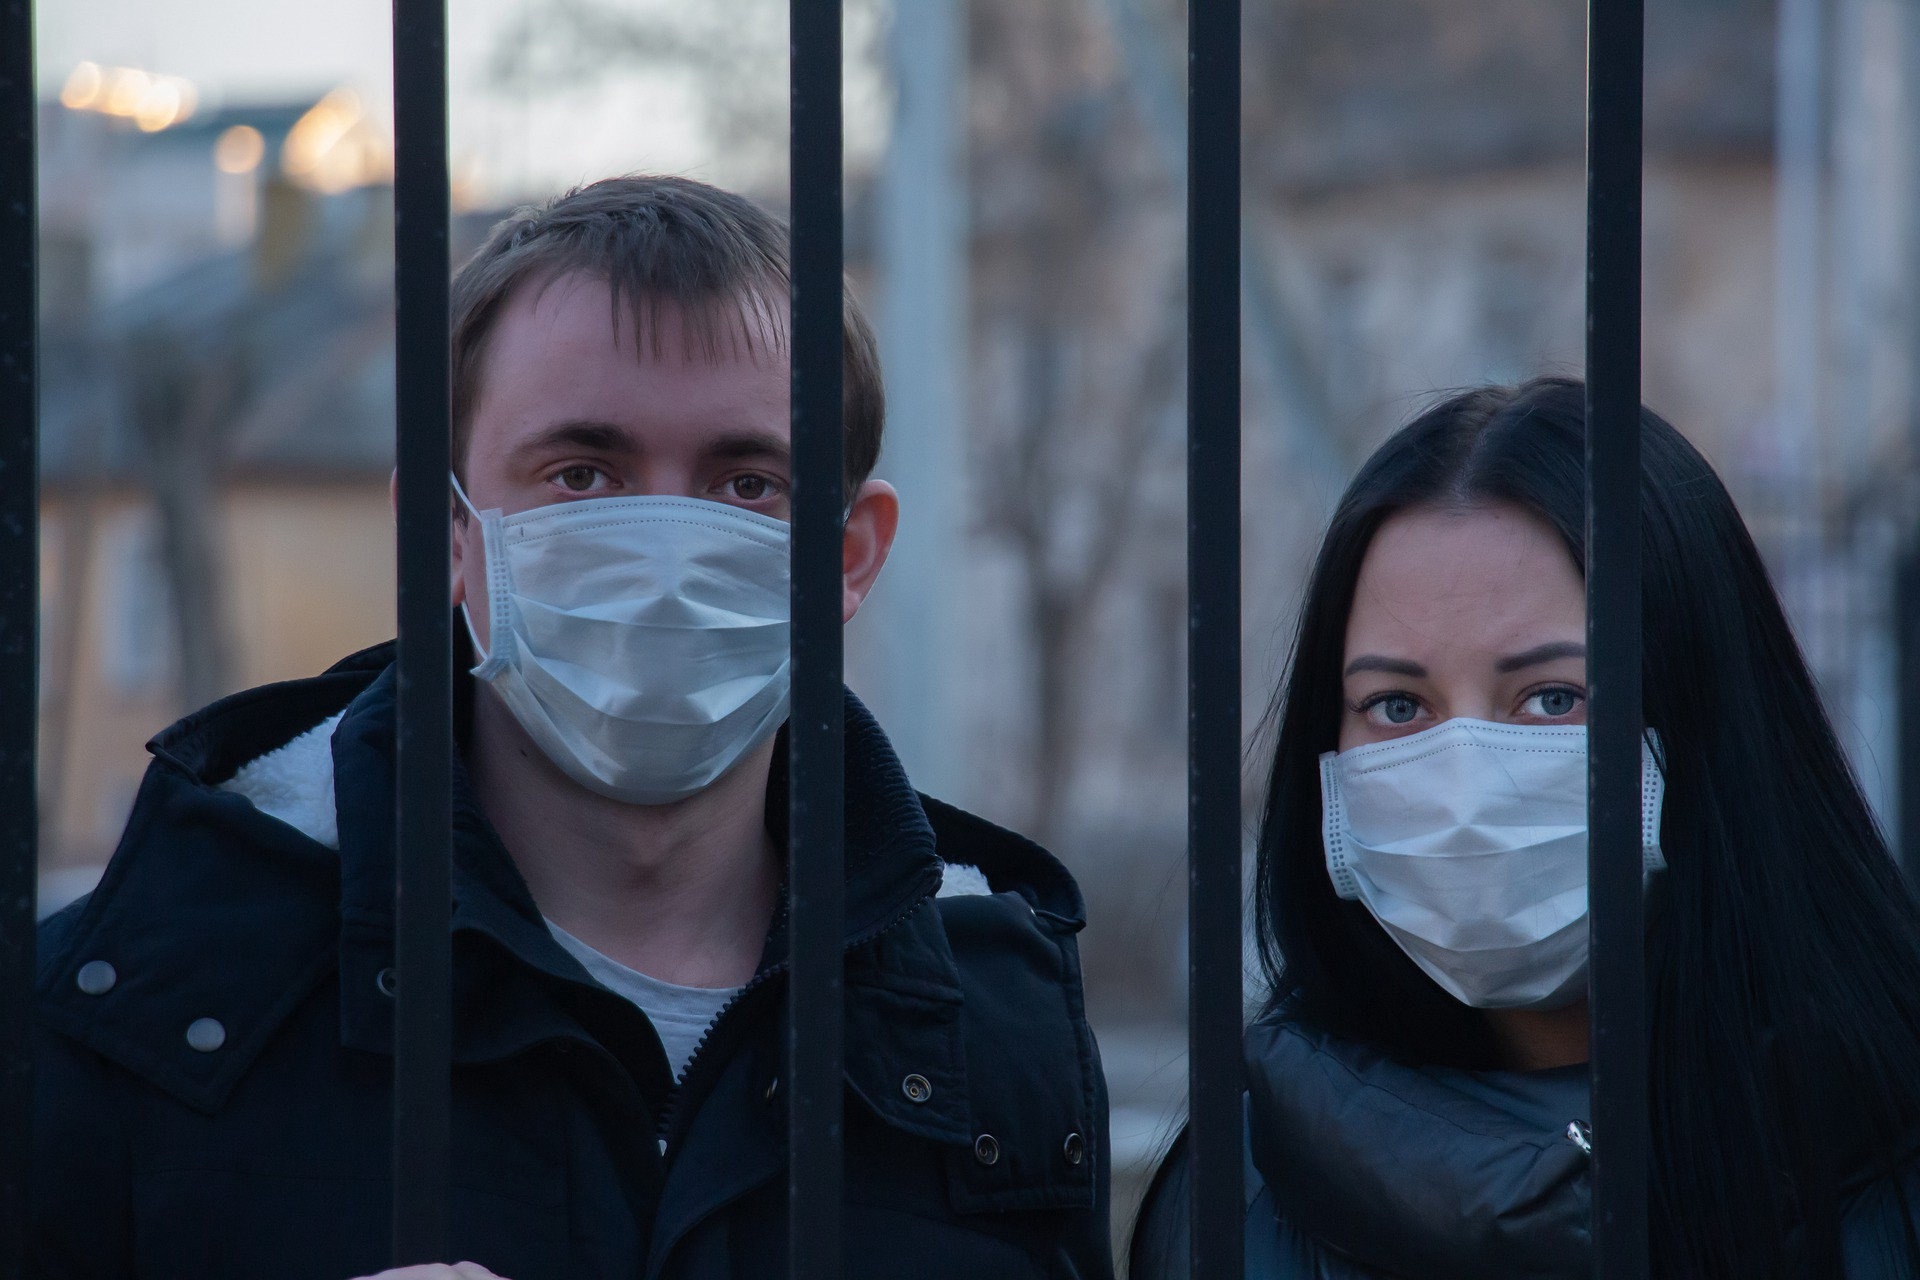 man and woman with face masks, behind prison bars